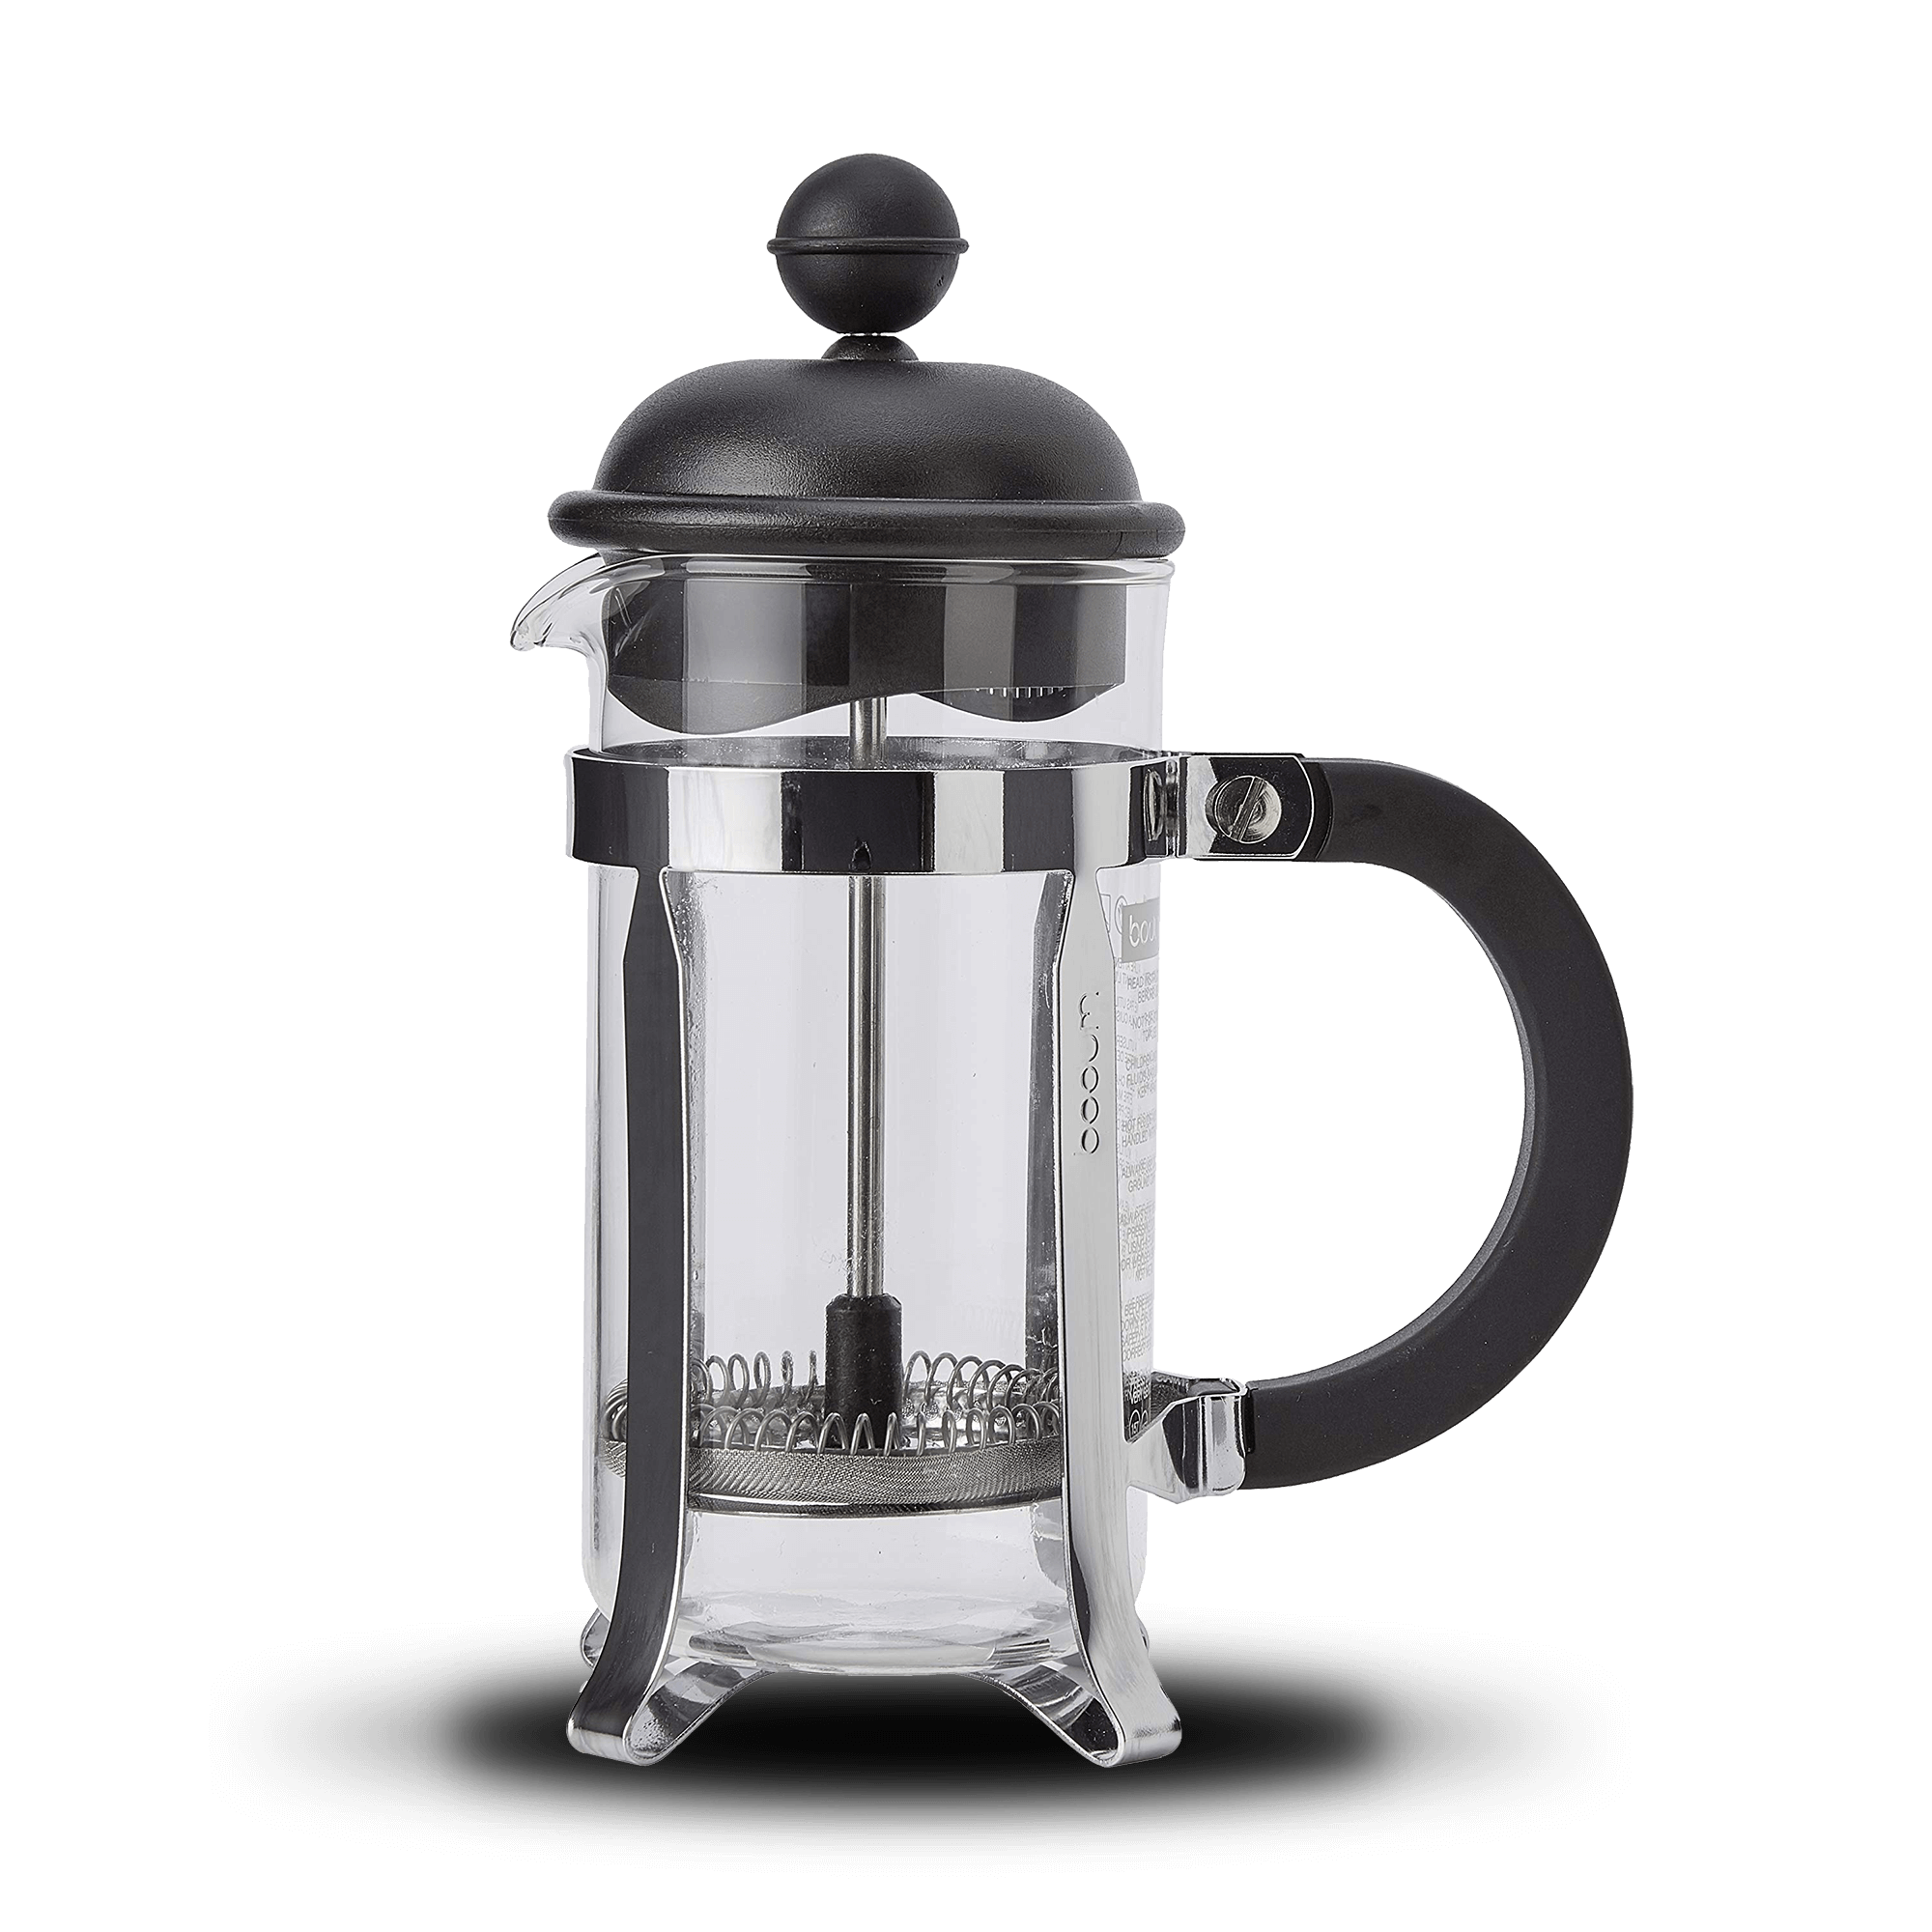 3 Cup Cafetiere - Bewley's Tea & Coffee